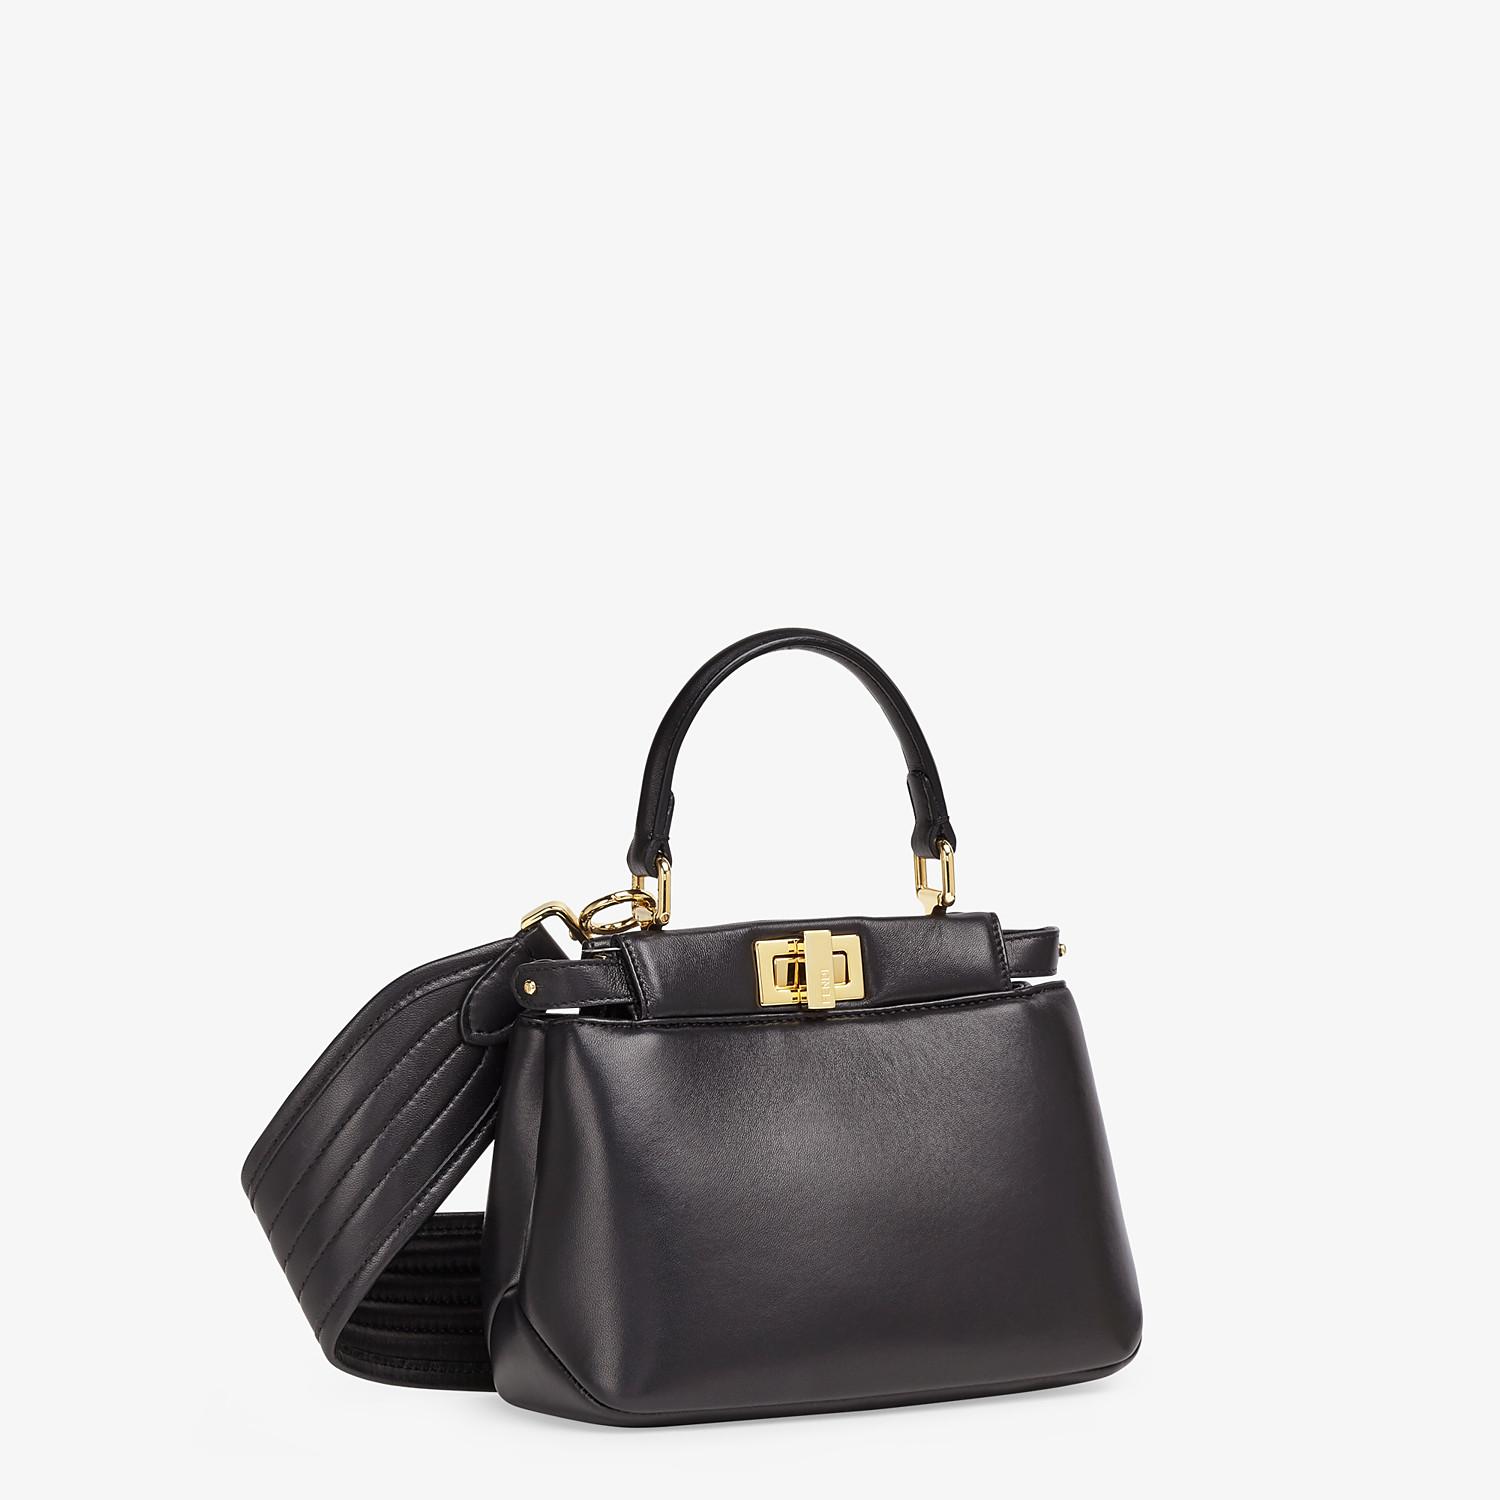 FENDI PEEKABOO ICONIC XS - Black nappa leather bag - view 3 detail